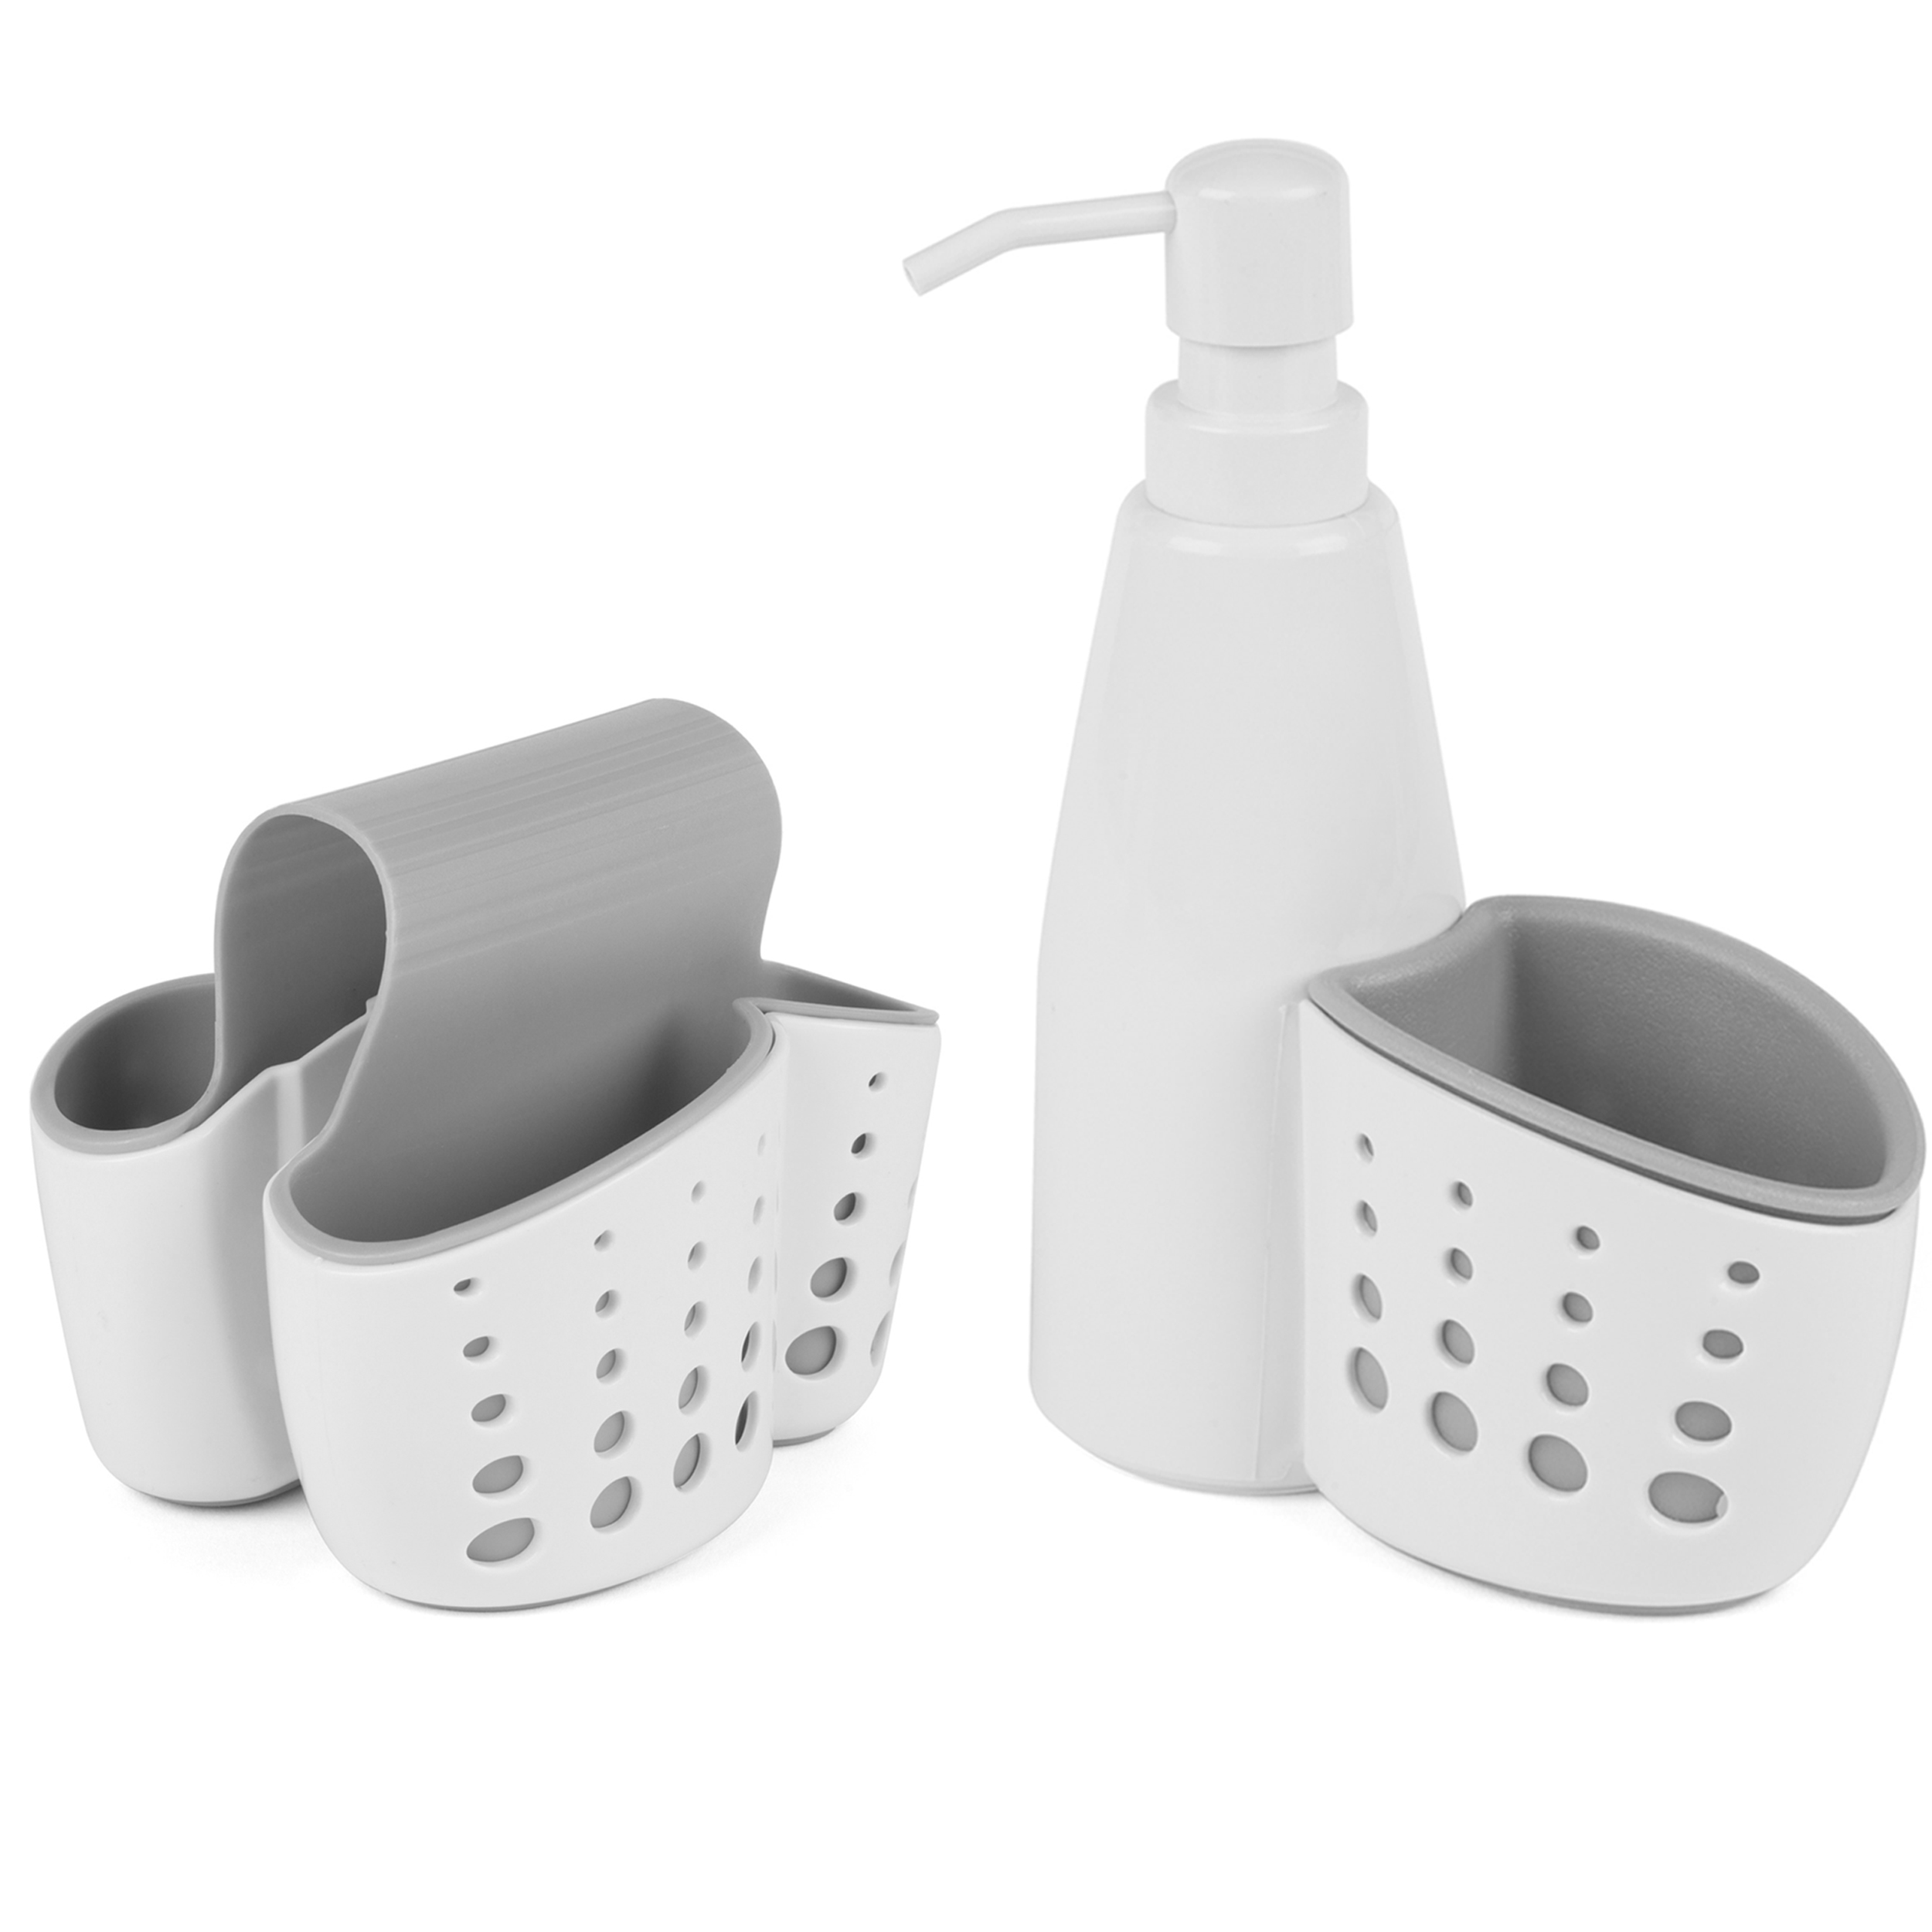 Beldray COMBO-5134 Kitchen Basket with Soap Dispenser and Over Sink Kitchen  Basket, White/Grey